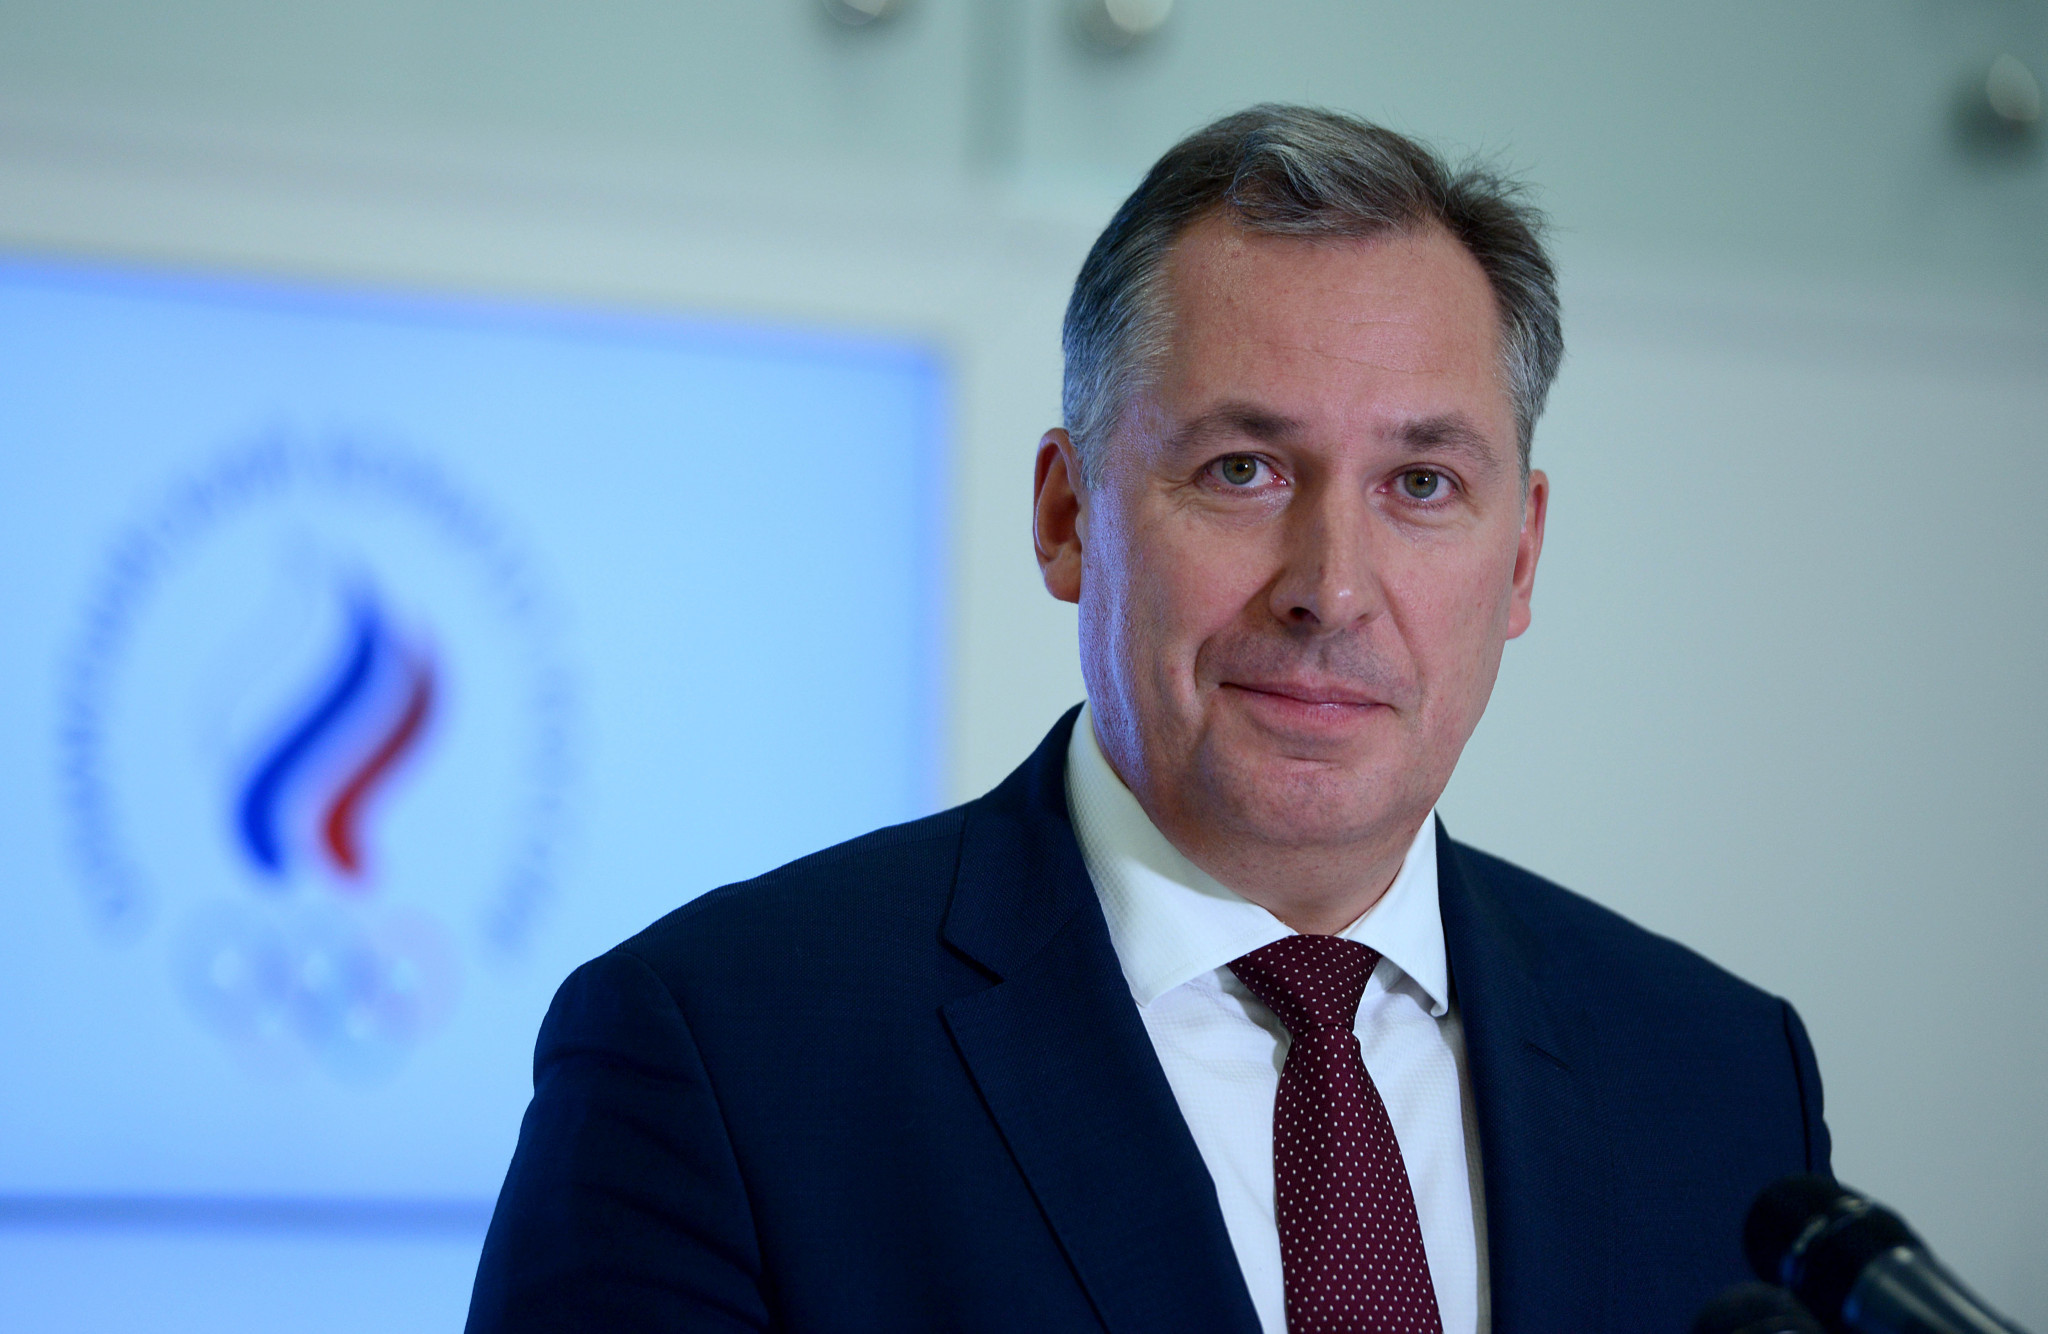 EFC President Stanislav Pozdnyakov said during his opening address that the coronavirus pandemic was an